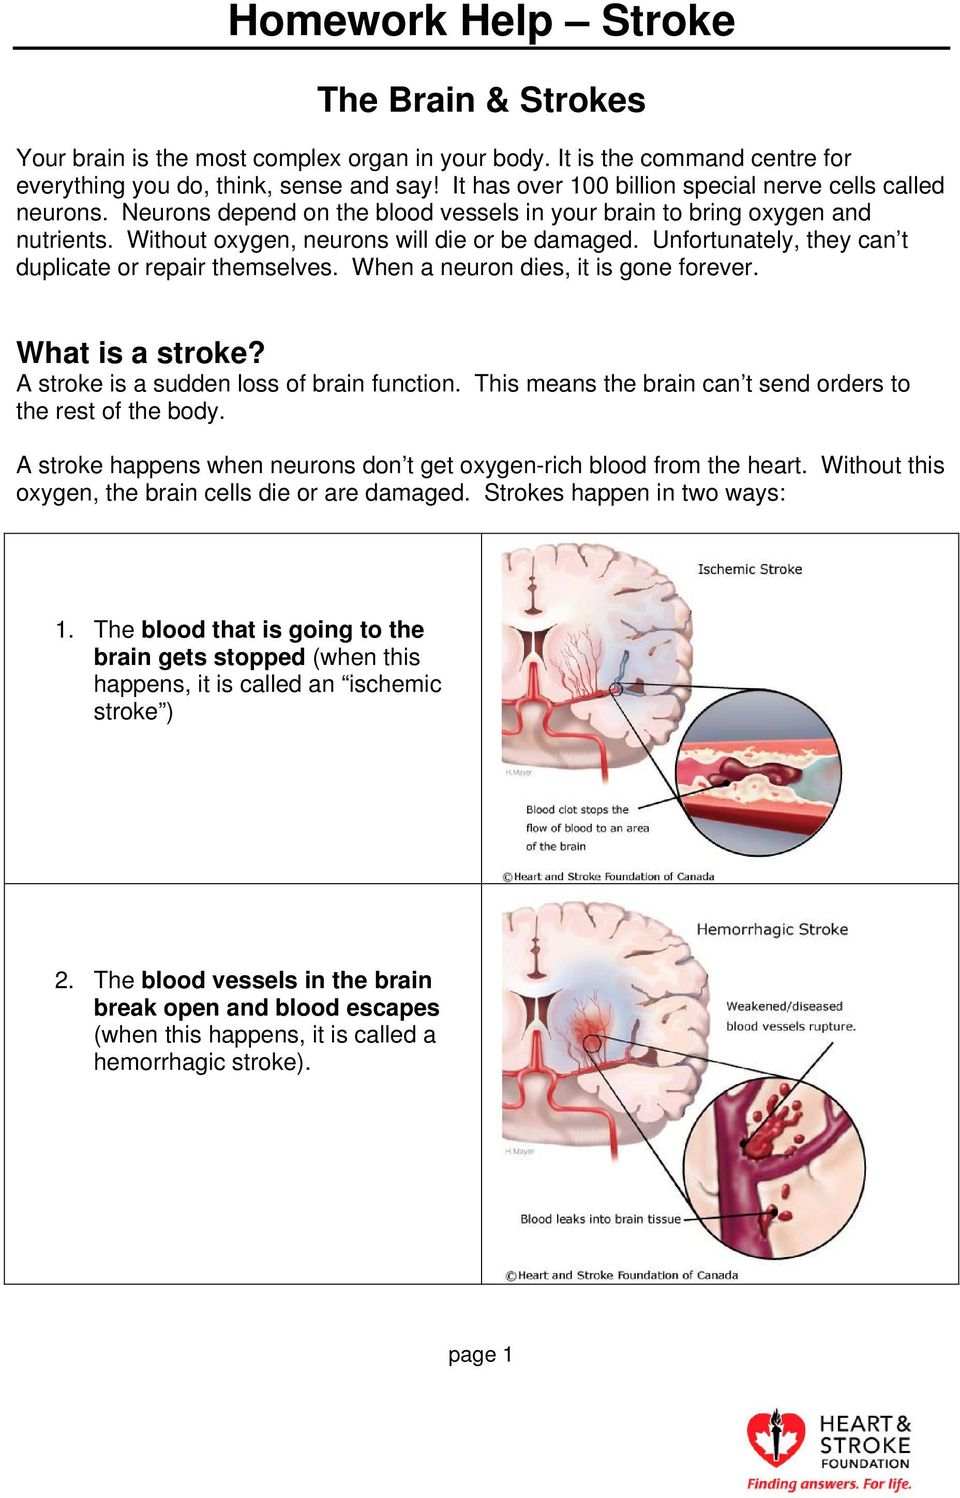 When a neuron dies, it is gone forever. What is a stroke? A stroke is a sudden loss of brain function. This means the brain can t send orders to the rest of the body.